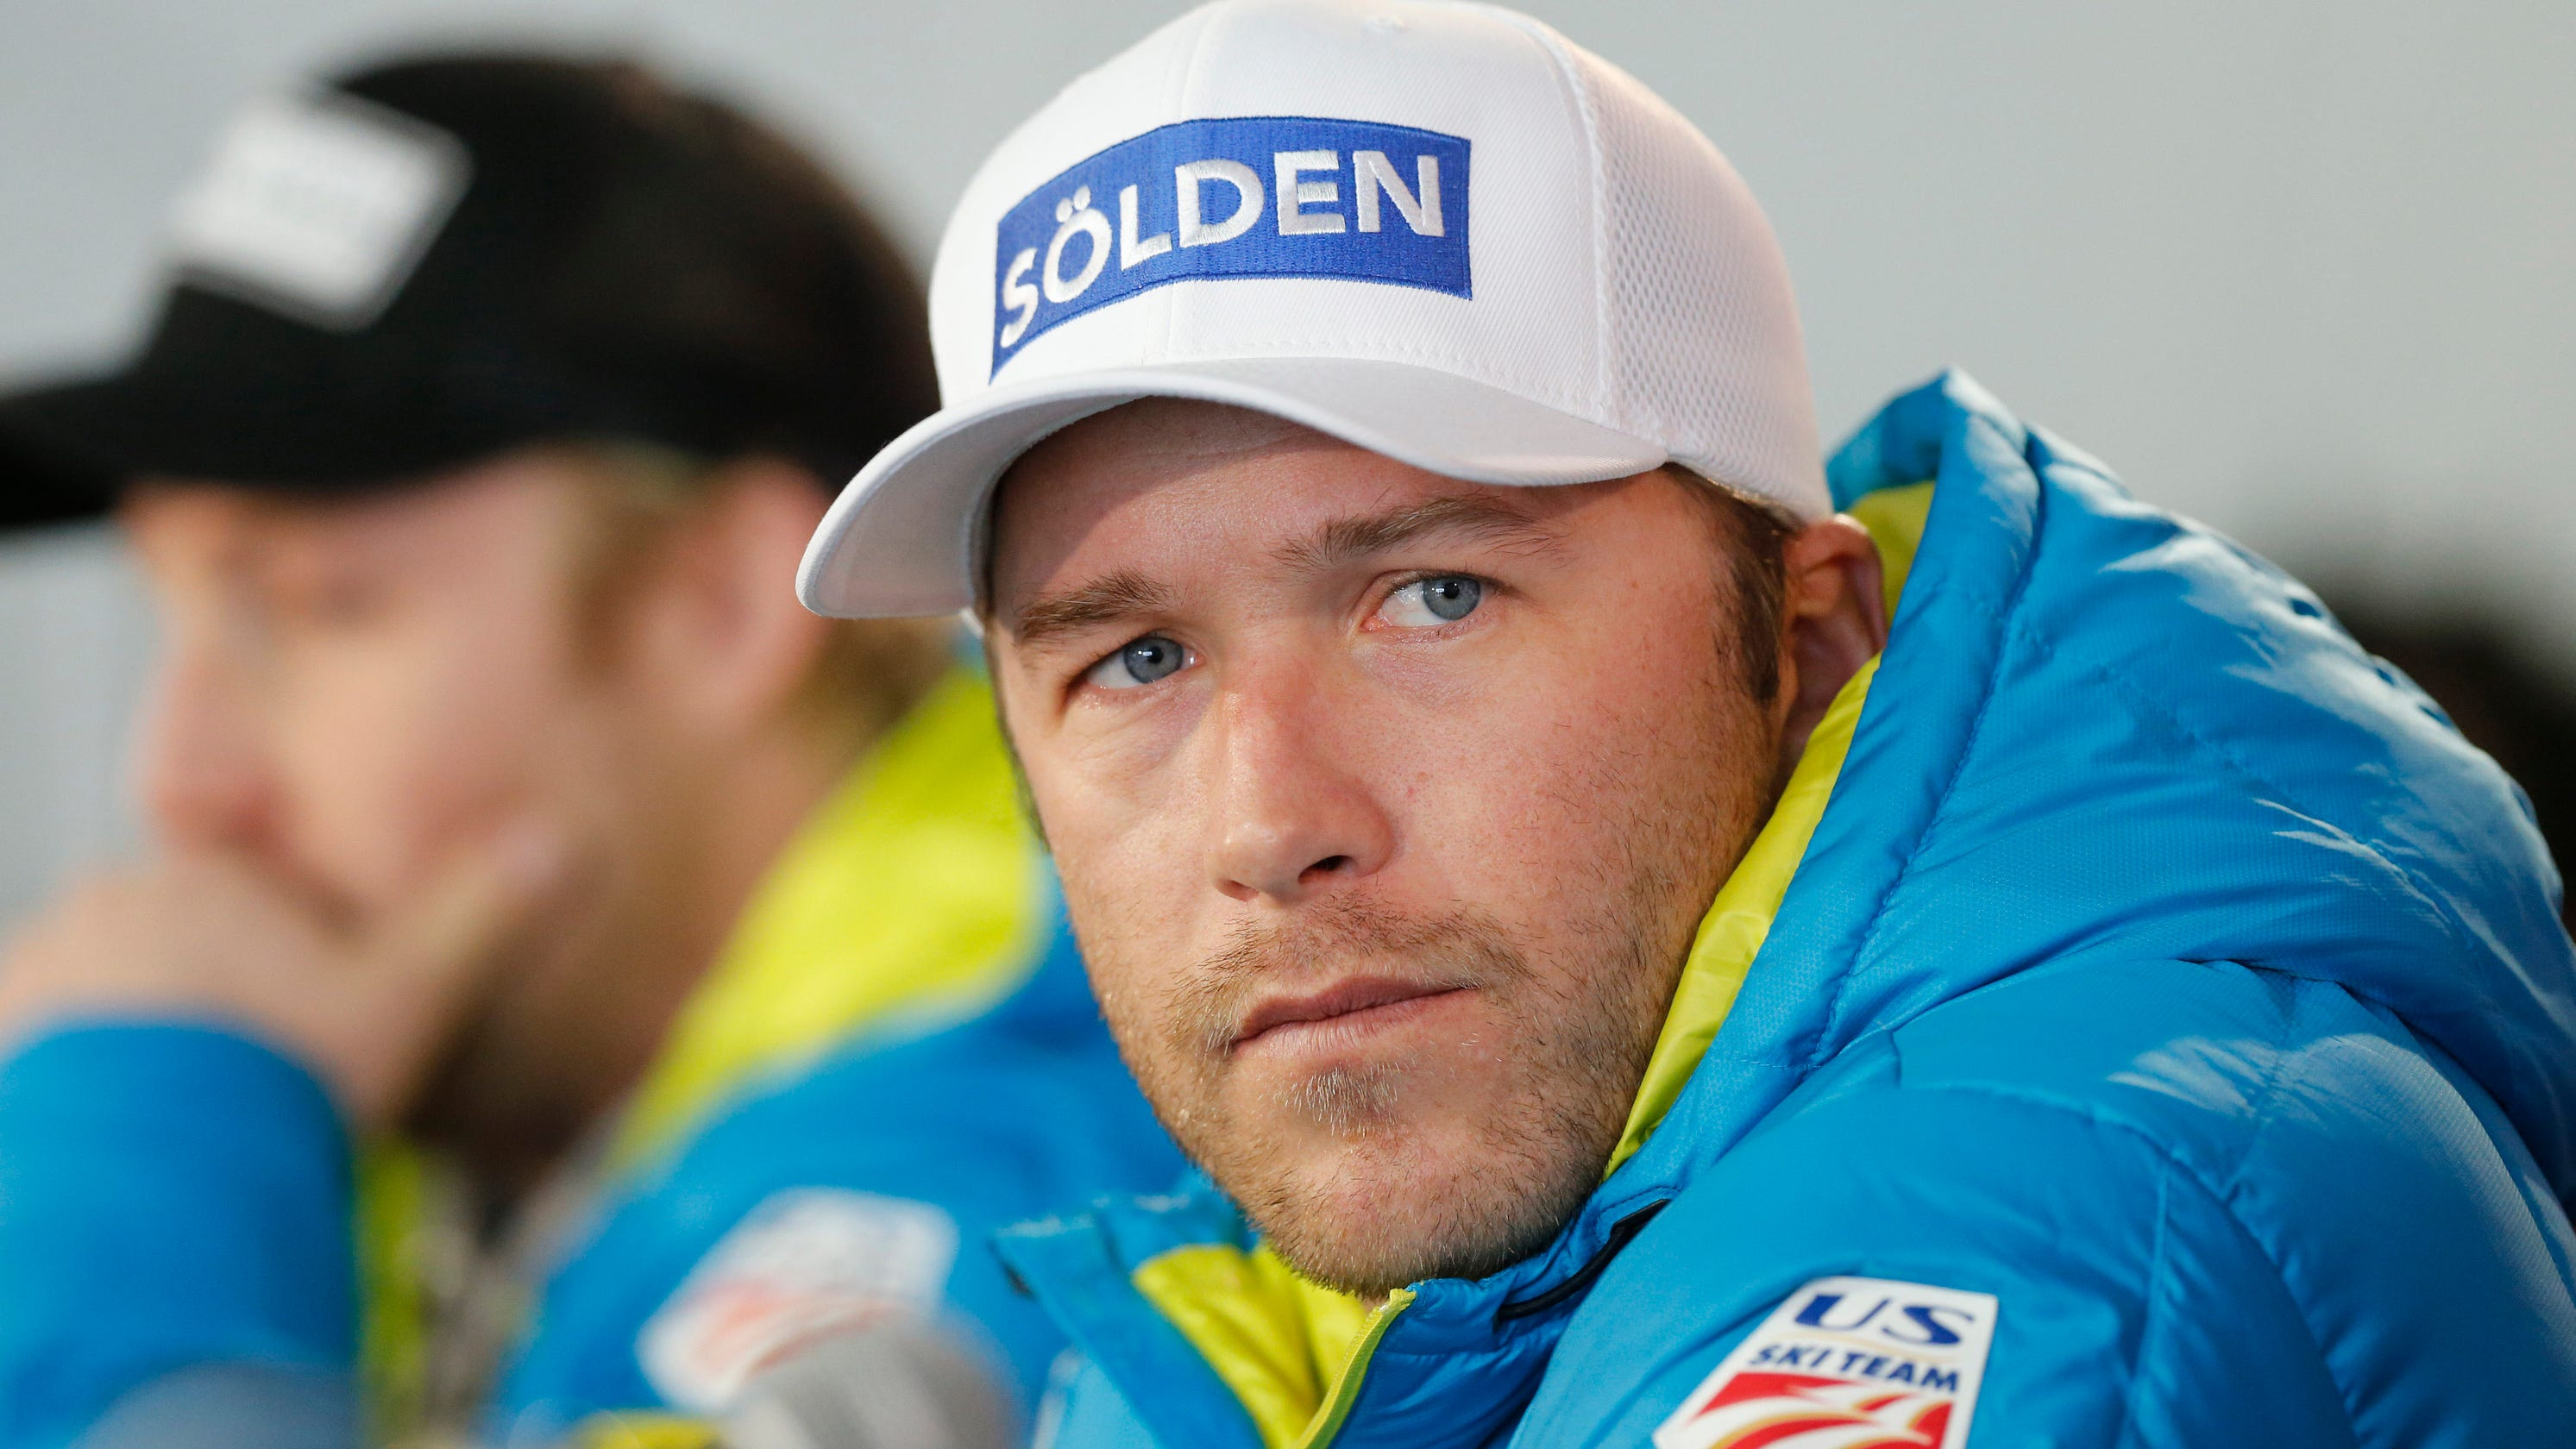 After tragic year, Bode Miller heads to Montana's mountains